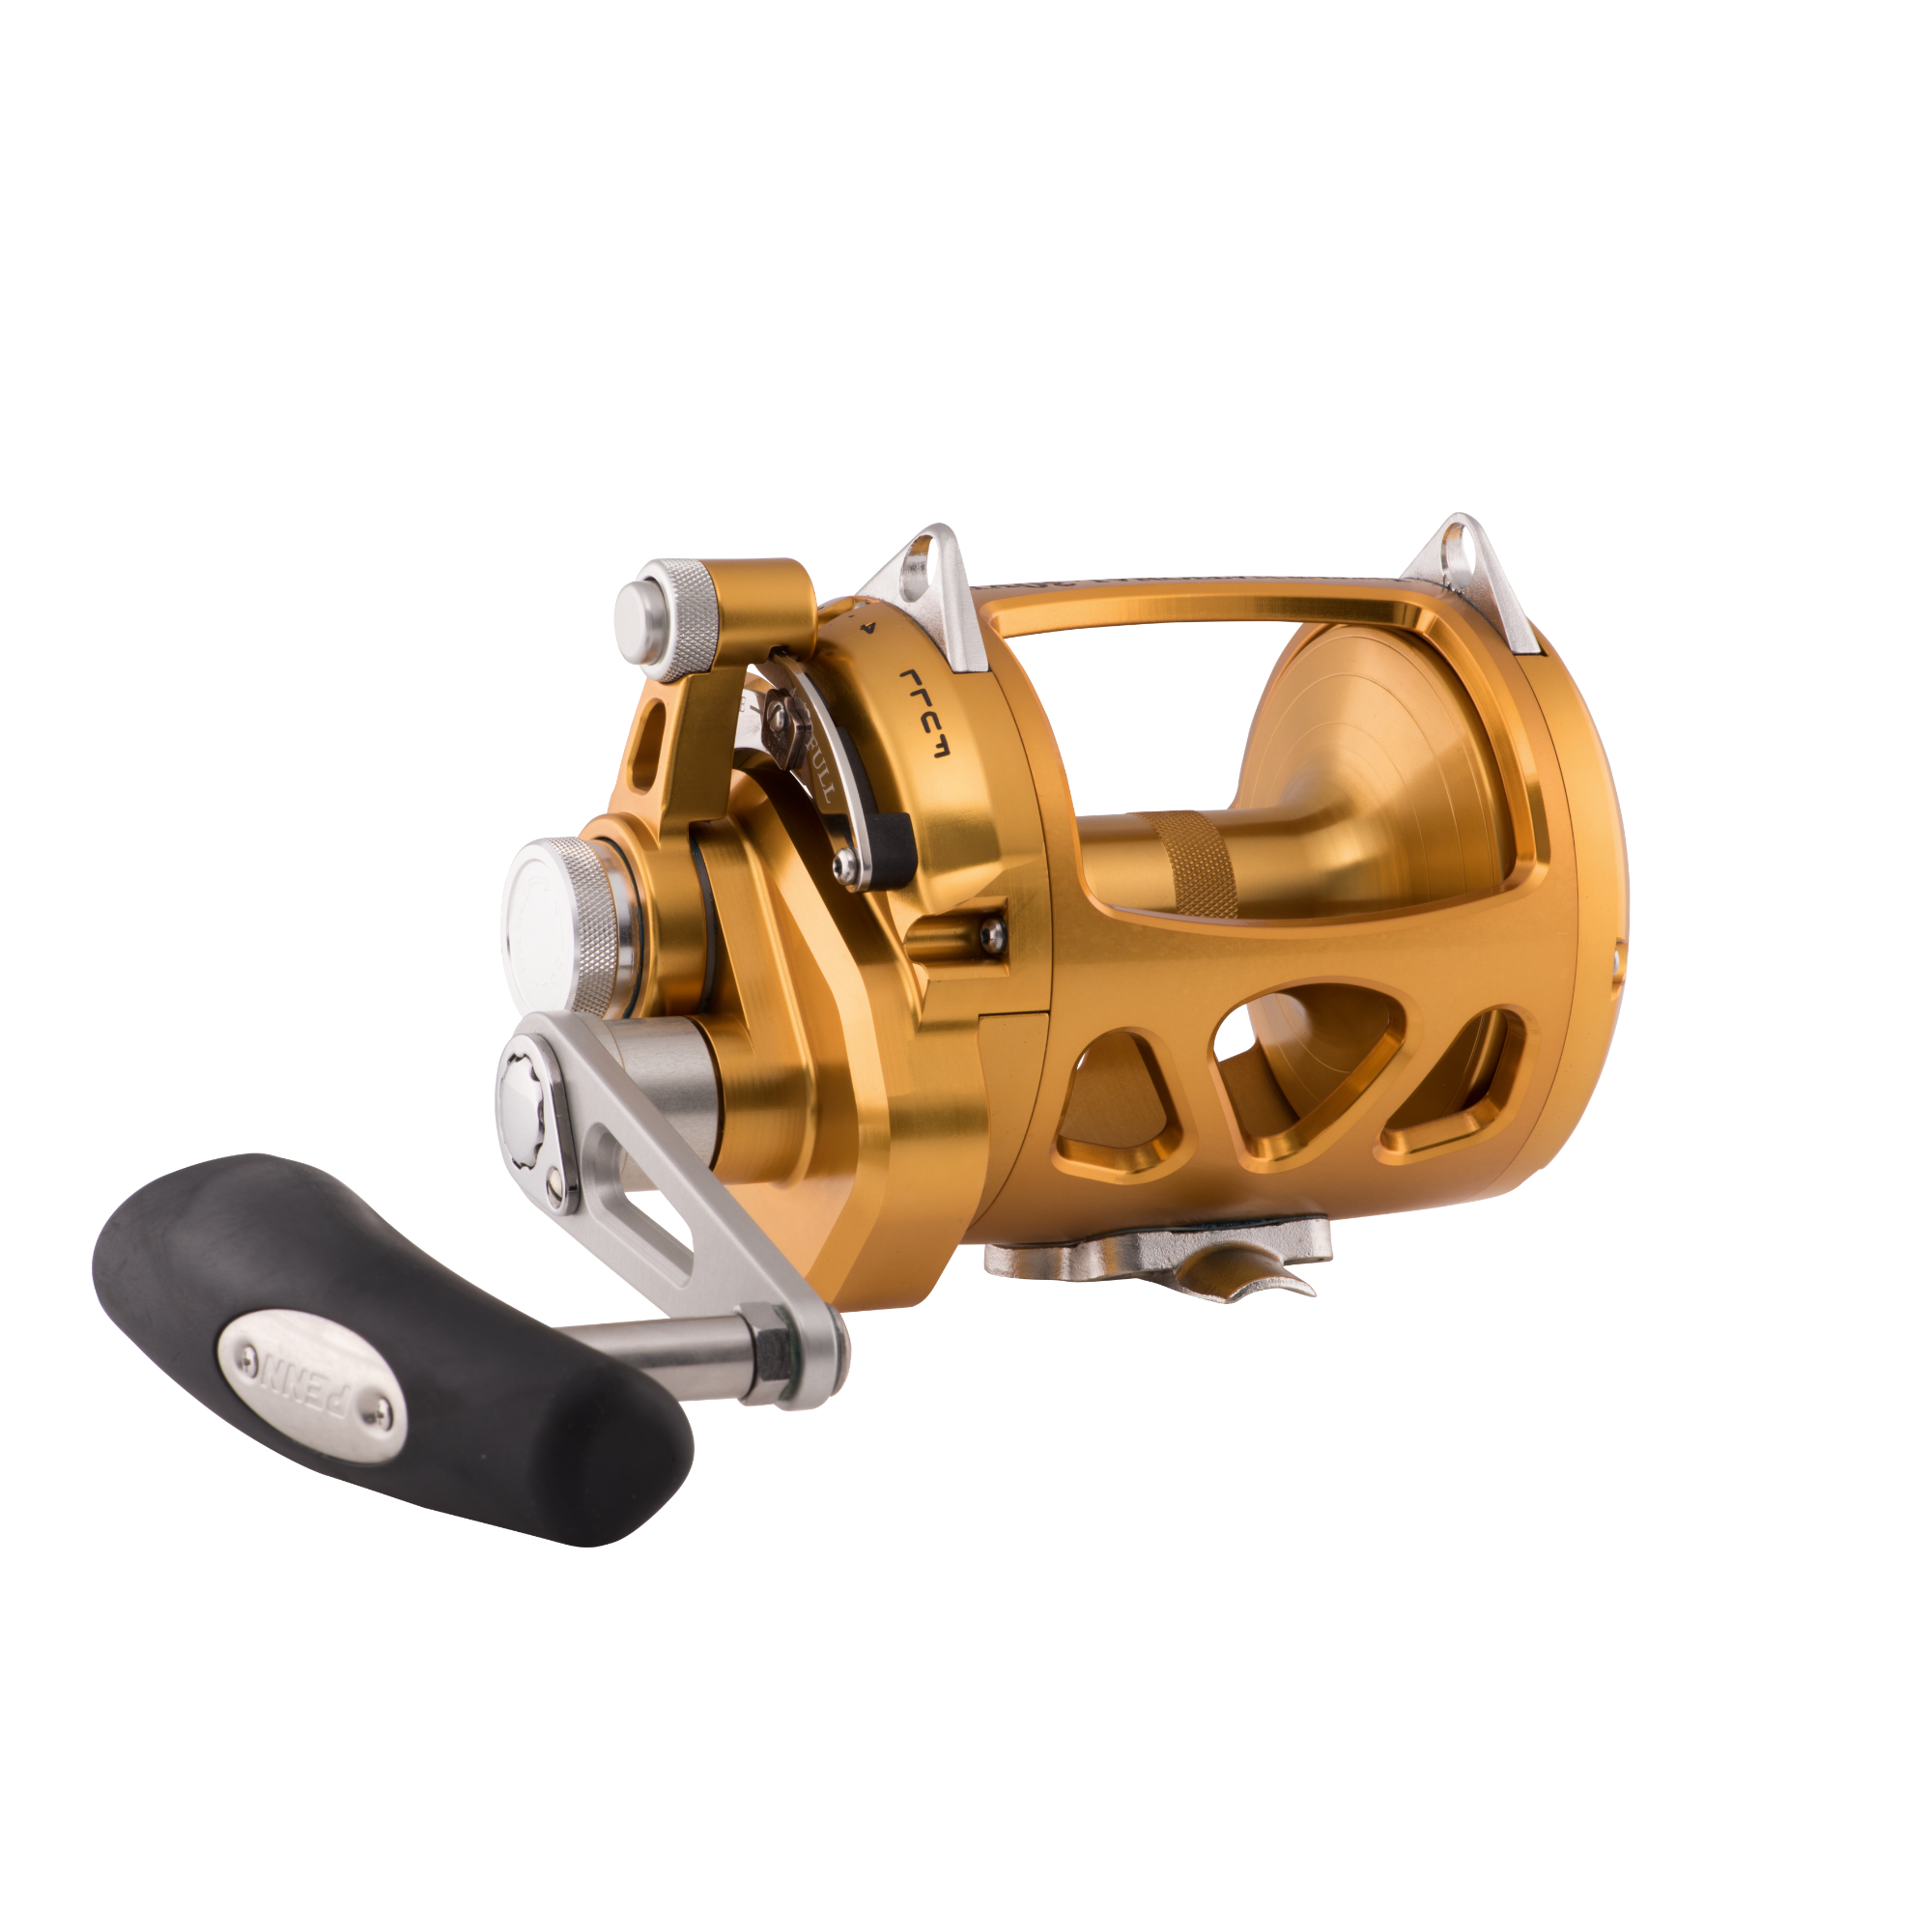 Penn INT30VIW International VI Reel